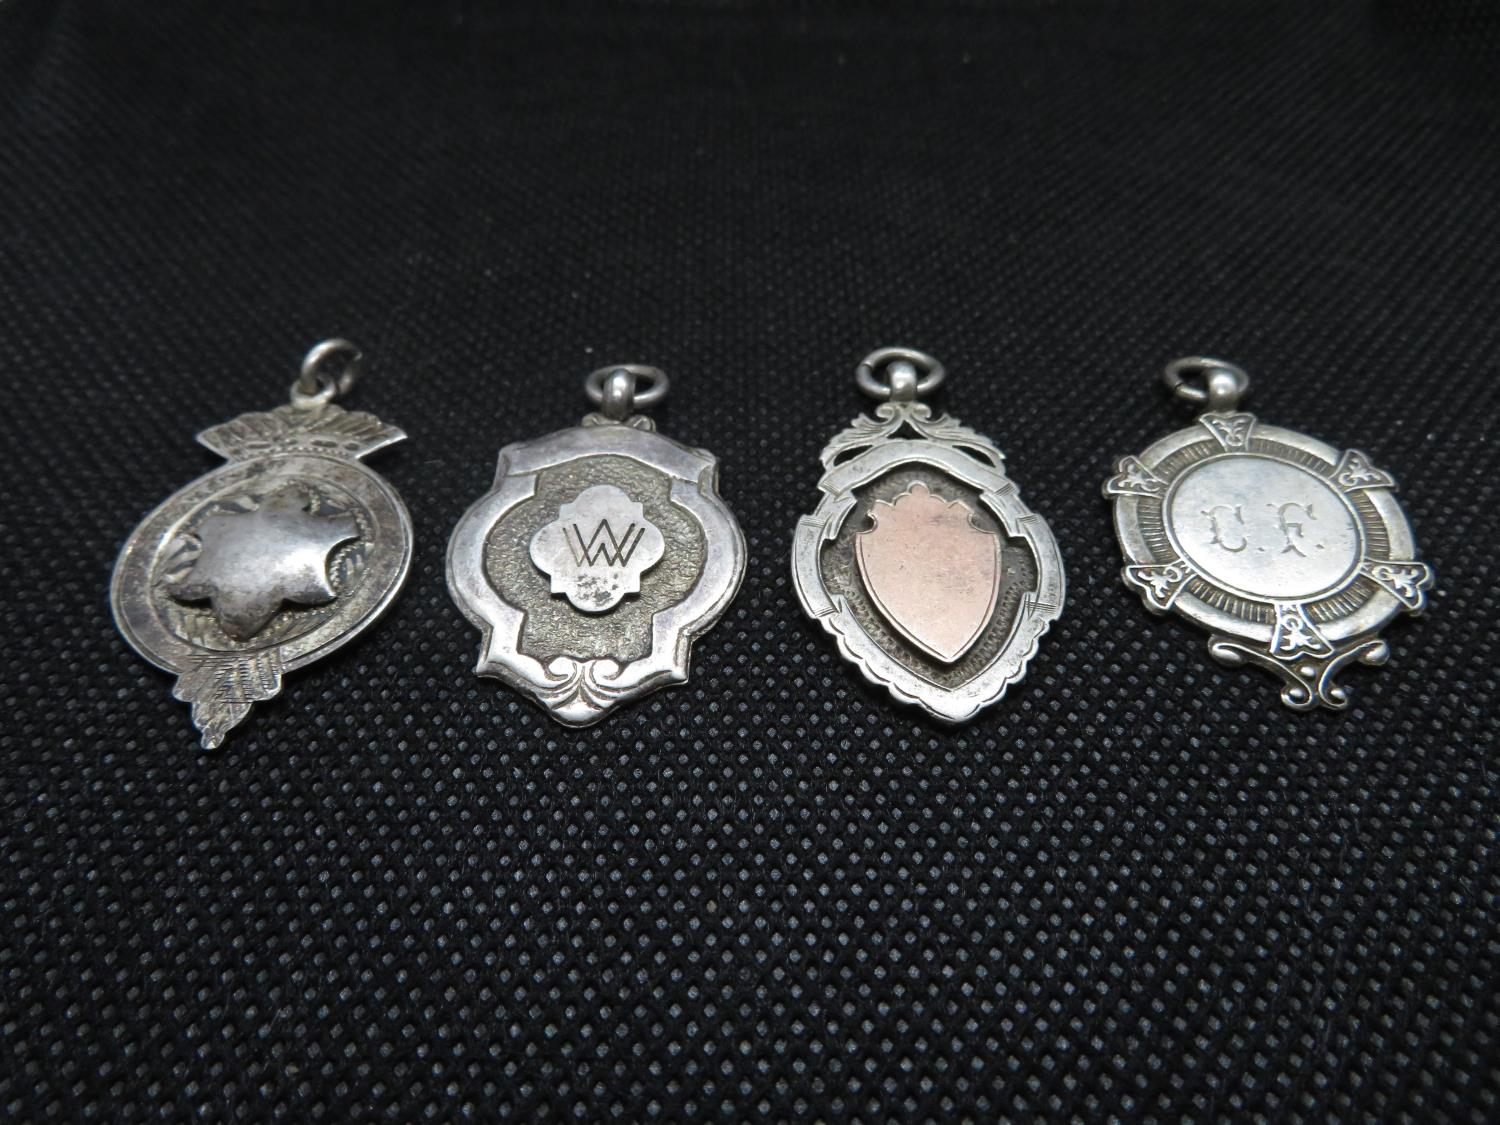 Lot 58 - 4 antique silver Albert watch medals all HM 22g